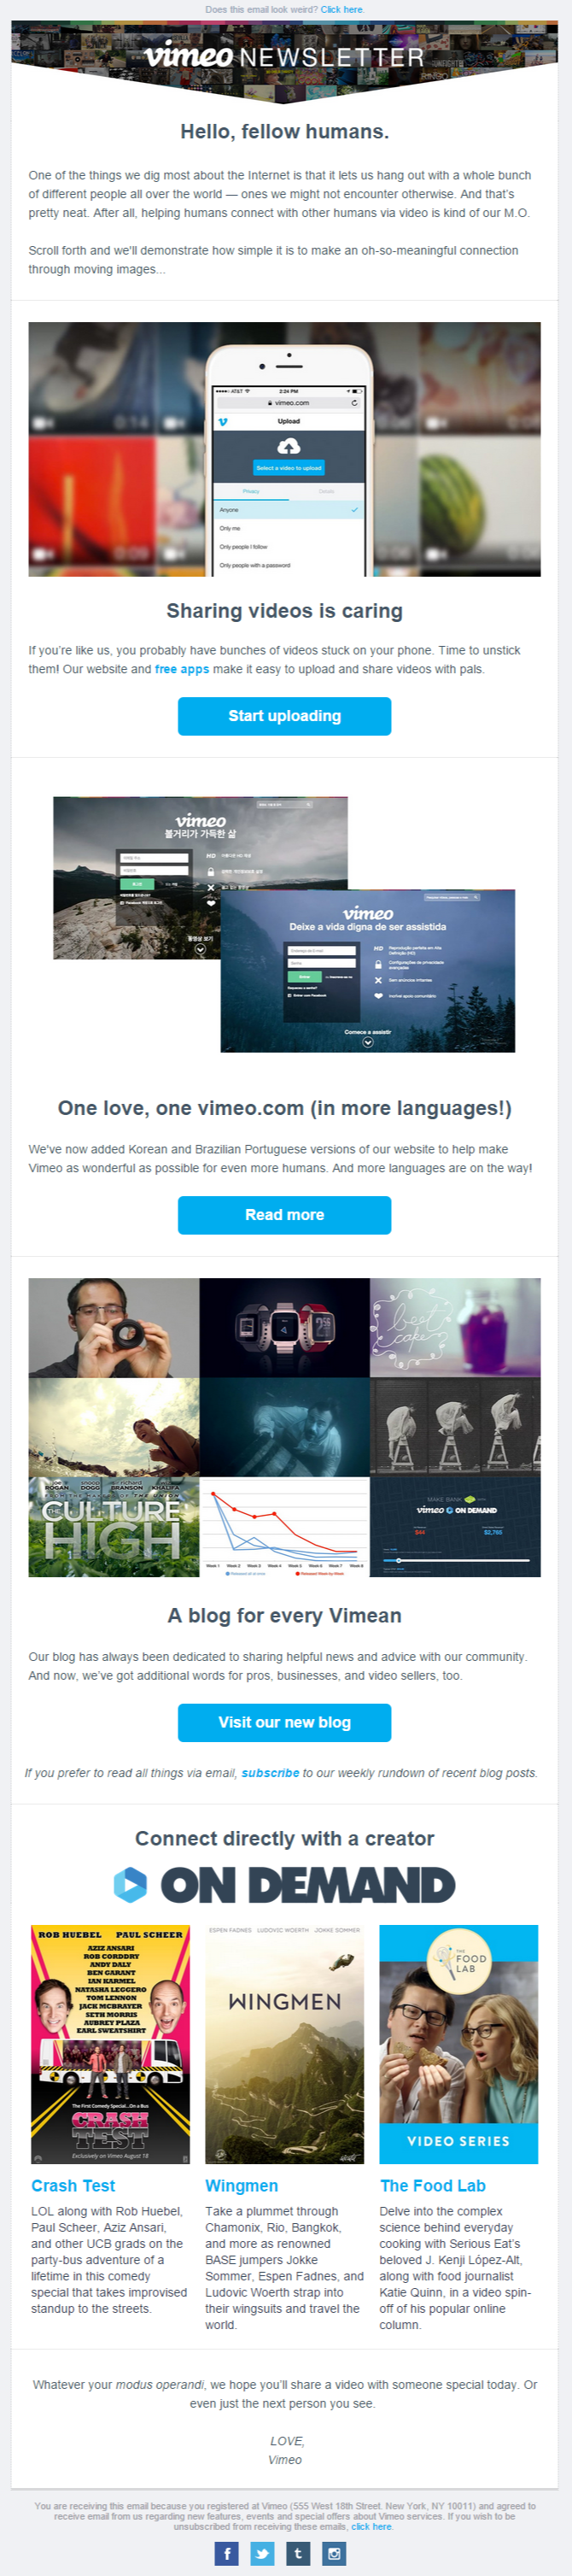 Vimeo newsletter